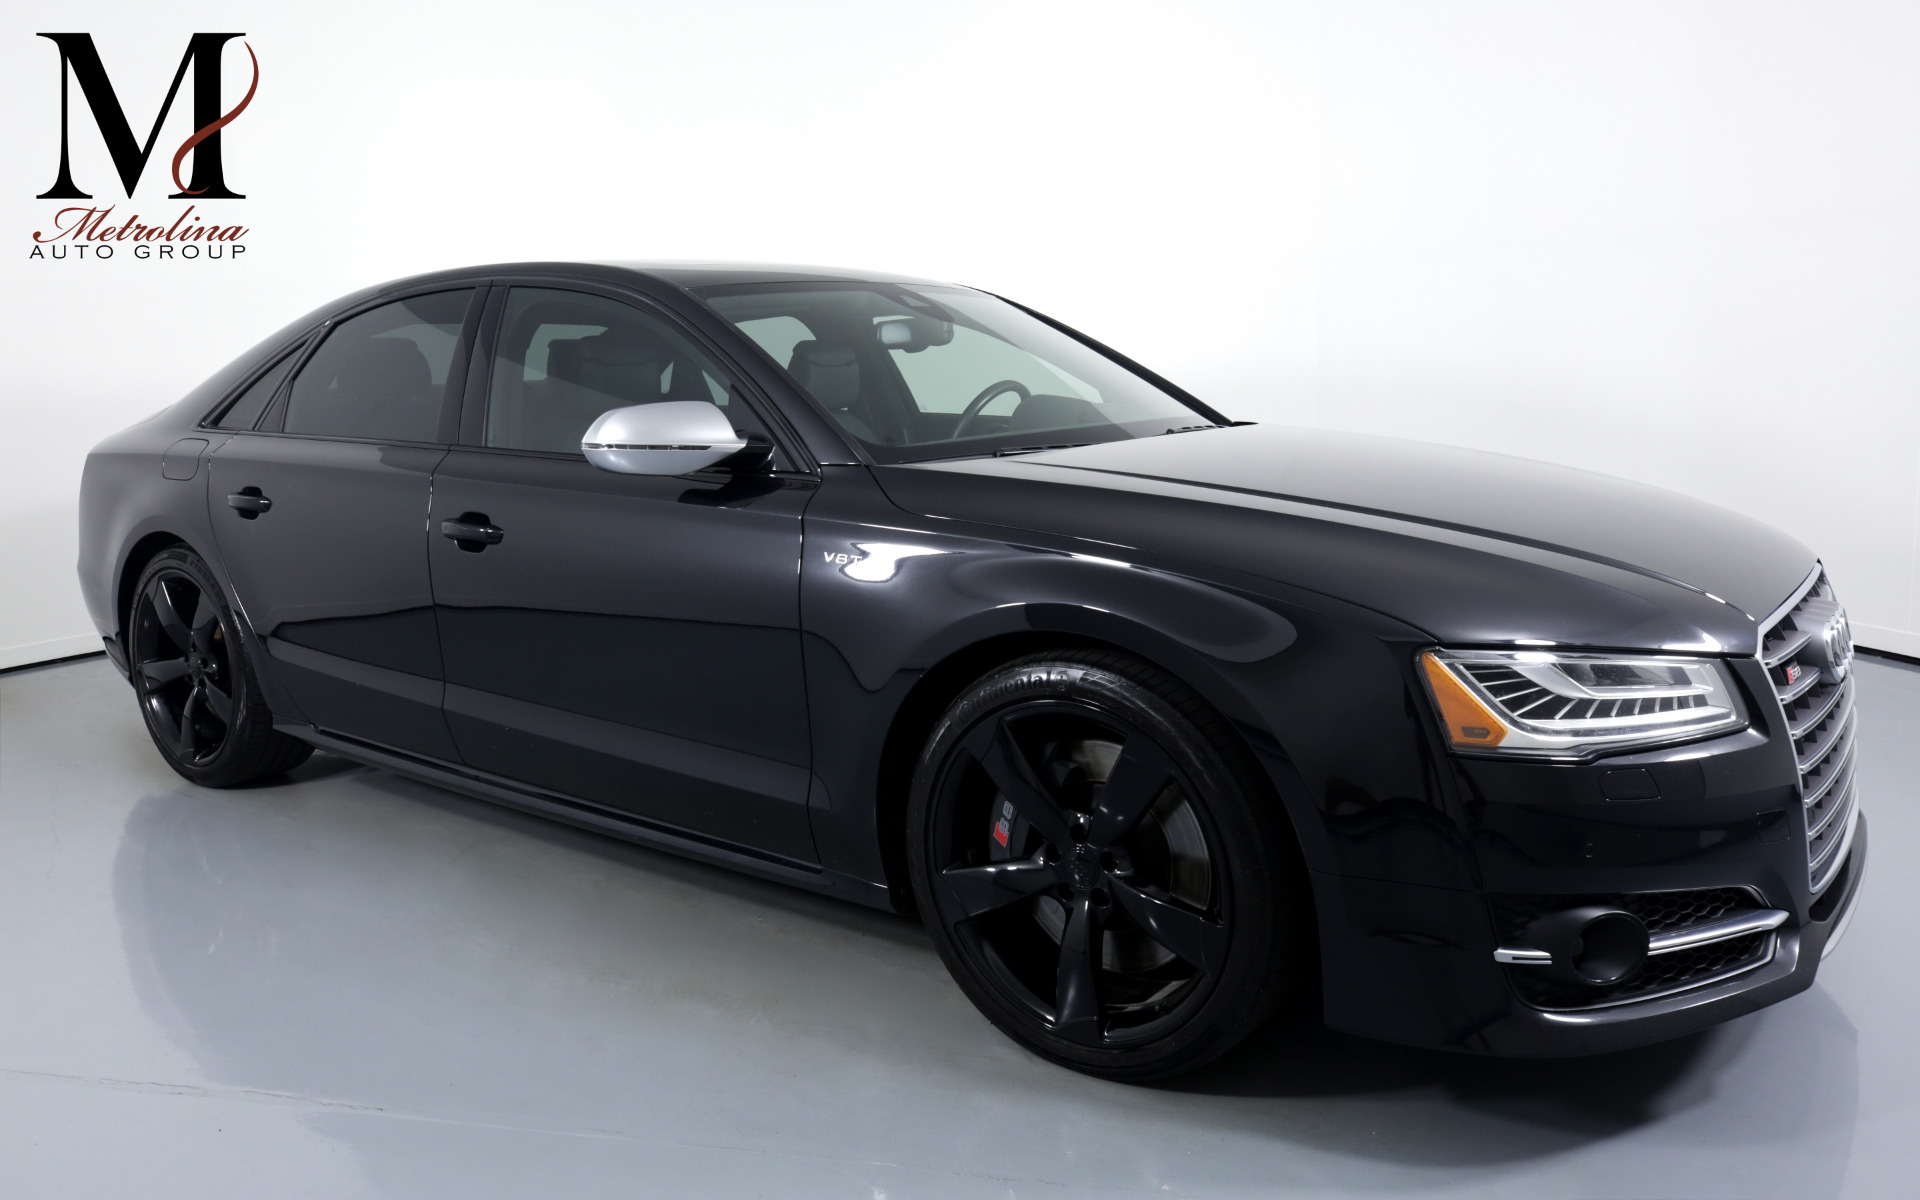 Used 2015 Audi S8 4.0T quattro for sale $39,996 at Metrolina Auto Group in Charlotte NC 28217 - 1